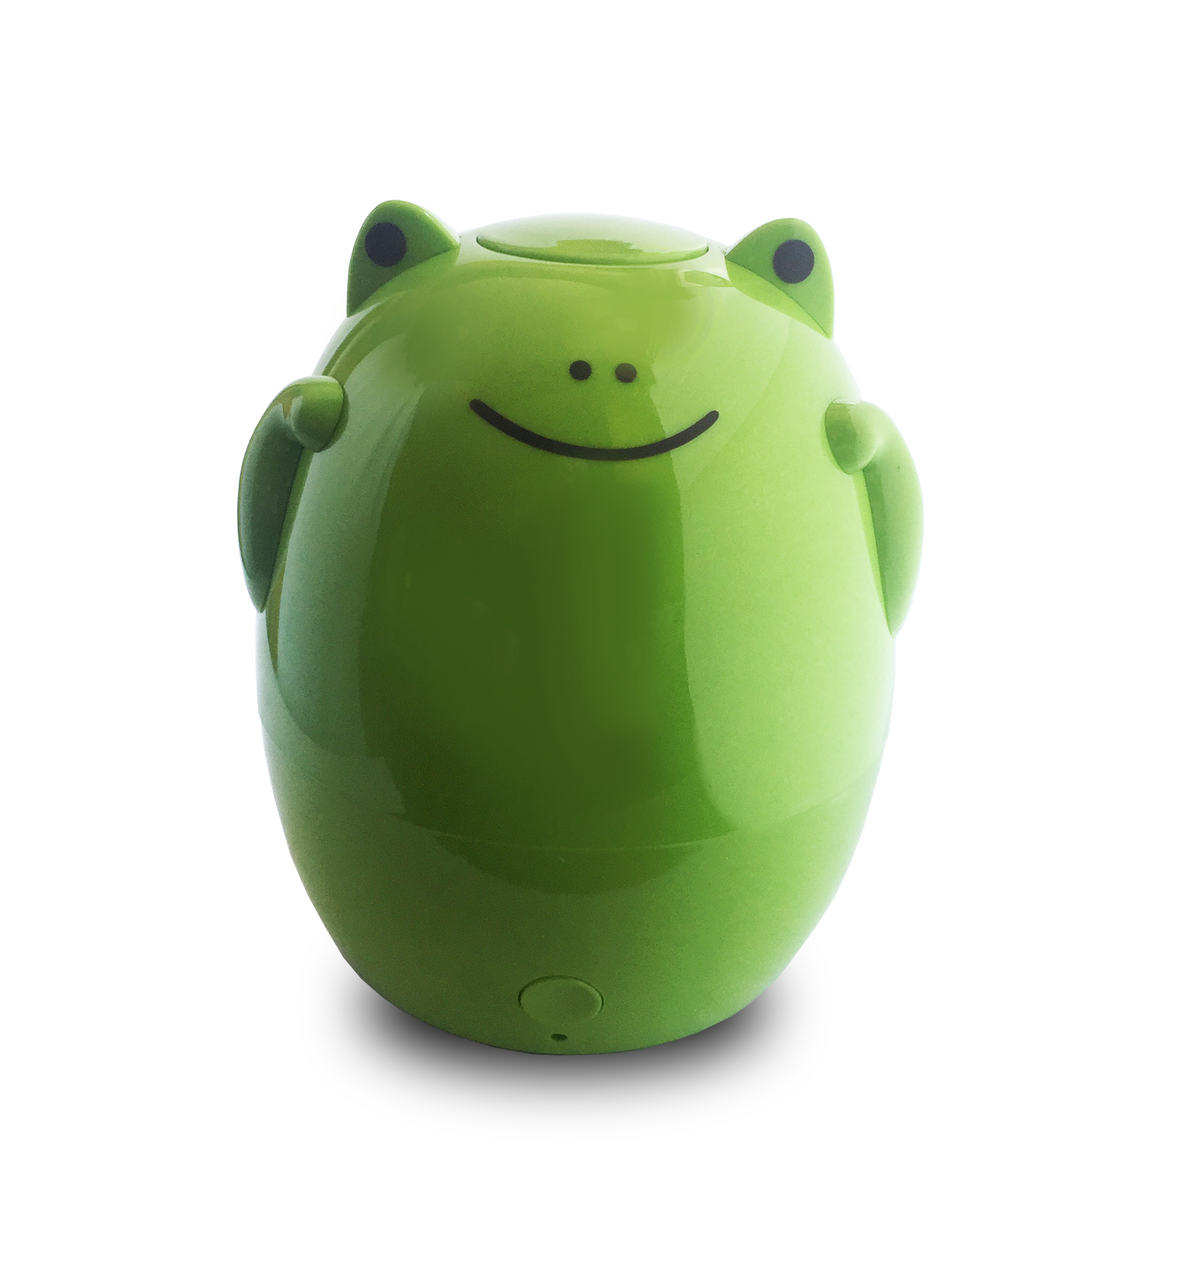 Jax The Frog Kids Diffuser & Humidifier